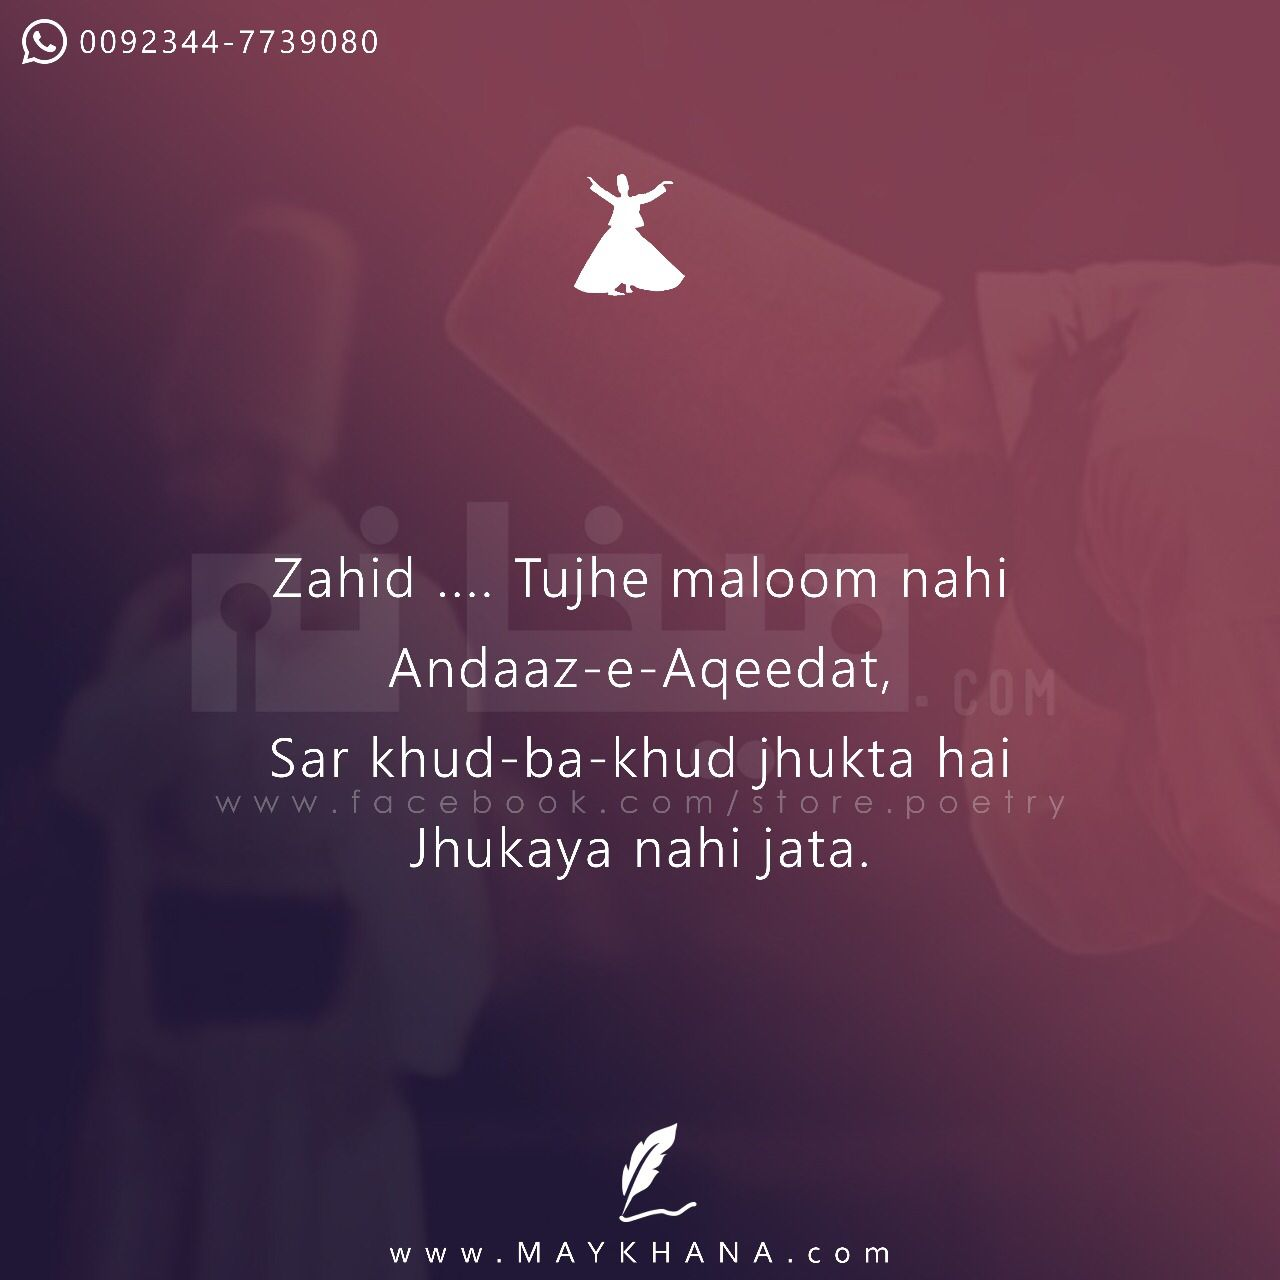 Pin By Mizzu On Quotes Islamic Inspirational Quotes Urdu Words With Meaning Urdu Love Words